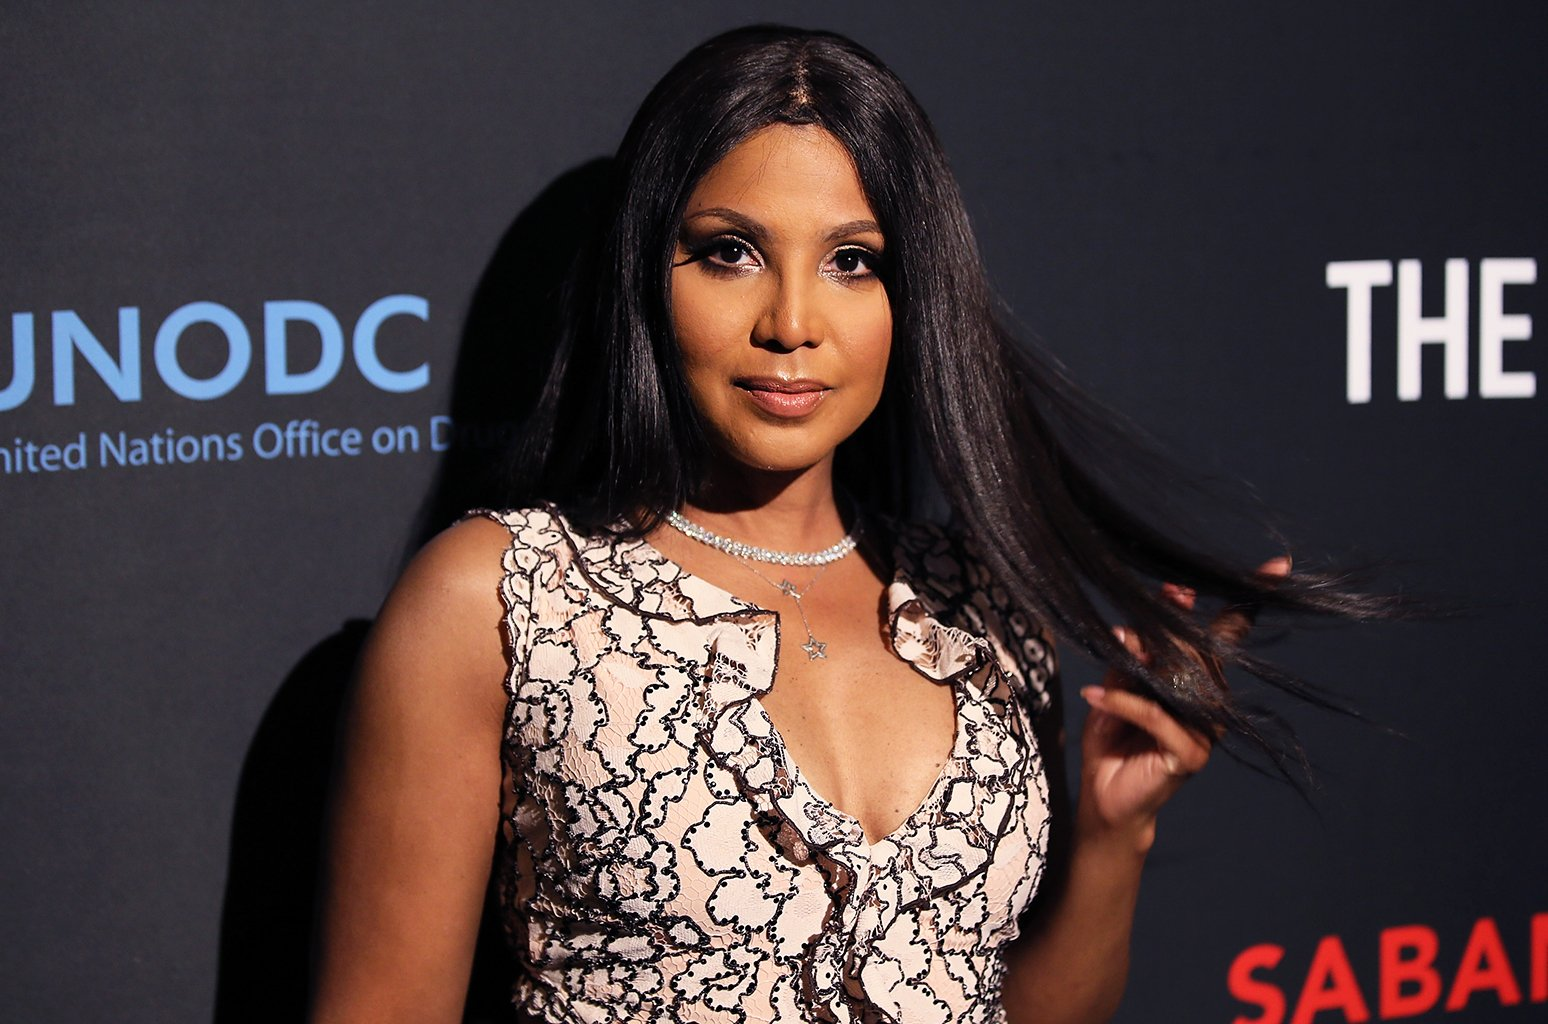 Toni Braxton Graces Another Magazine Cover – Check Out Her Photo